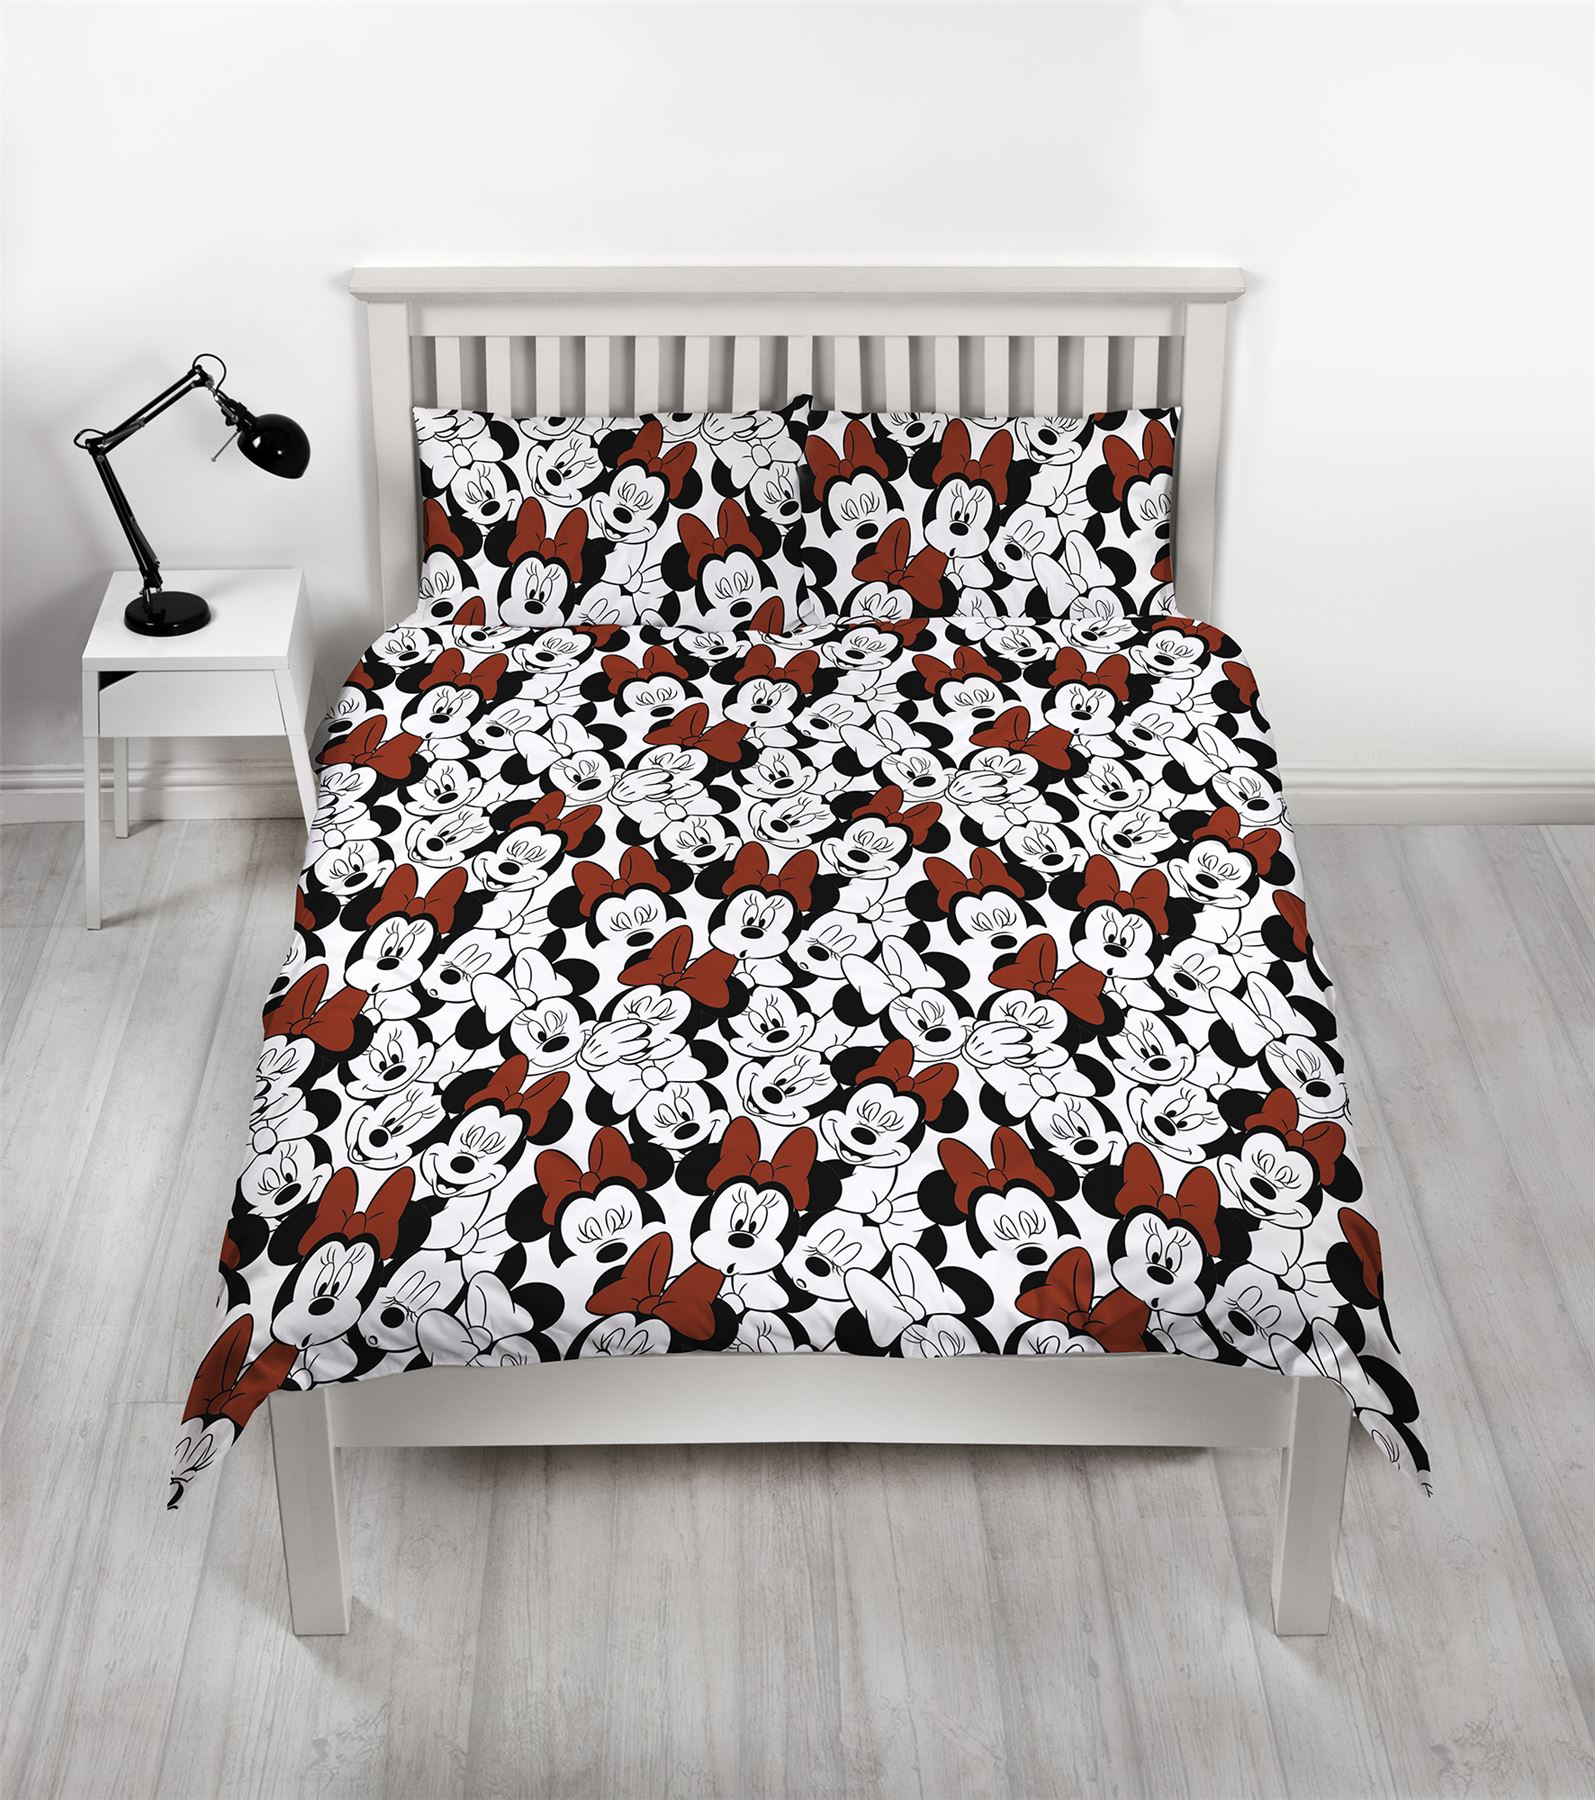 Disney-Minnie-Mouse-039-Cute-039-Single-Double-Duvet-Cover-Reversible-Bedding-Set thumbnail 3